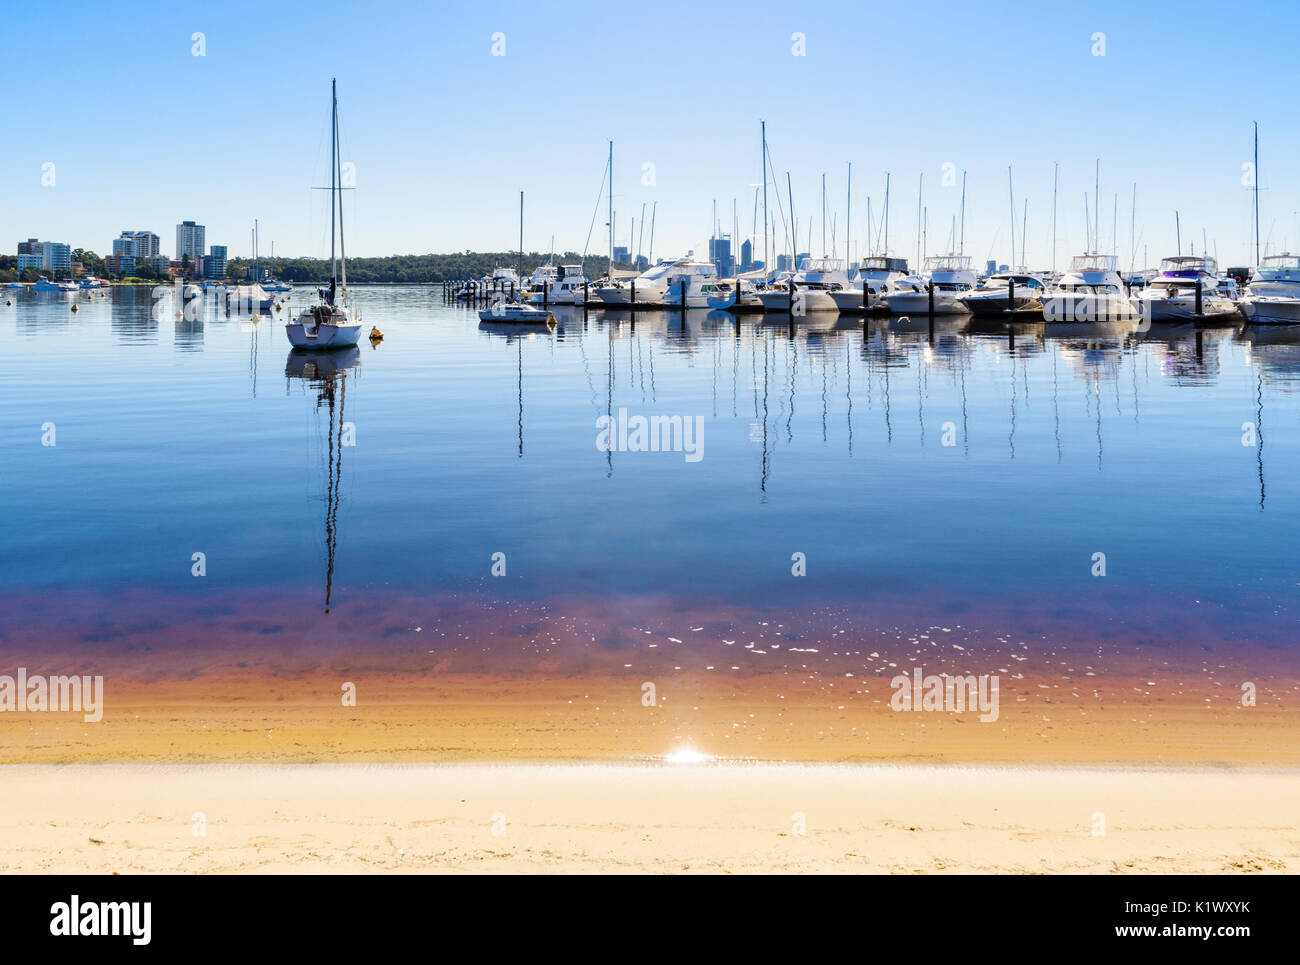 Boats moored at Royal Perth Yacht Club in Matilda Bay on the Swan River, Crawley, Perth, Western Australia Stock Photo